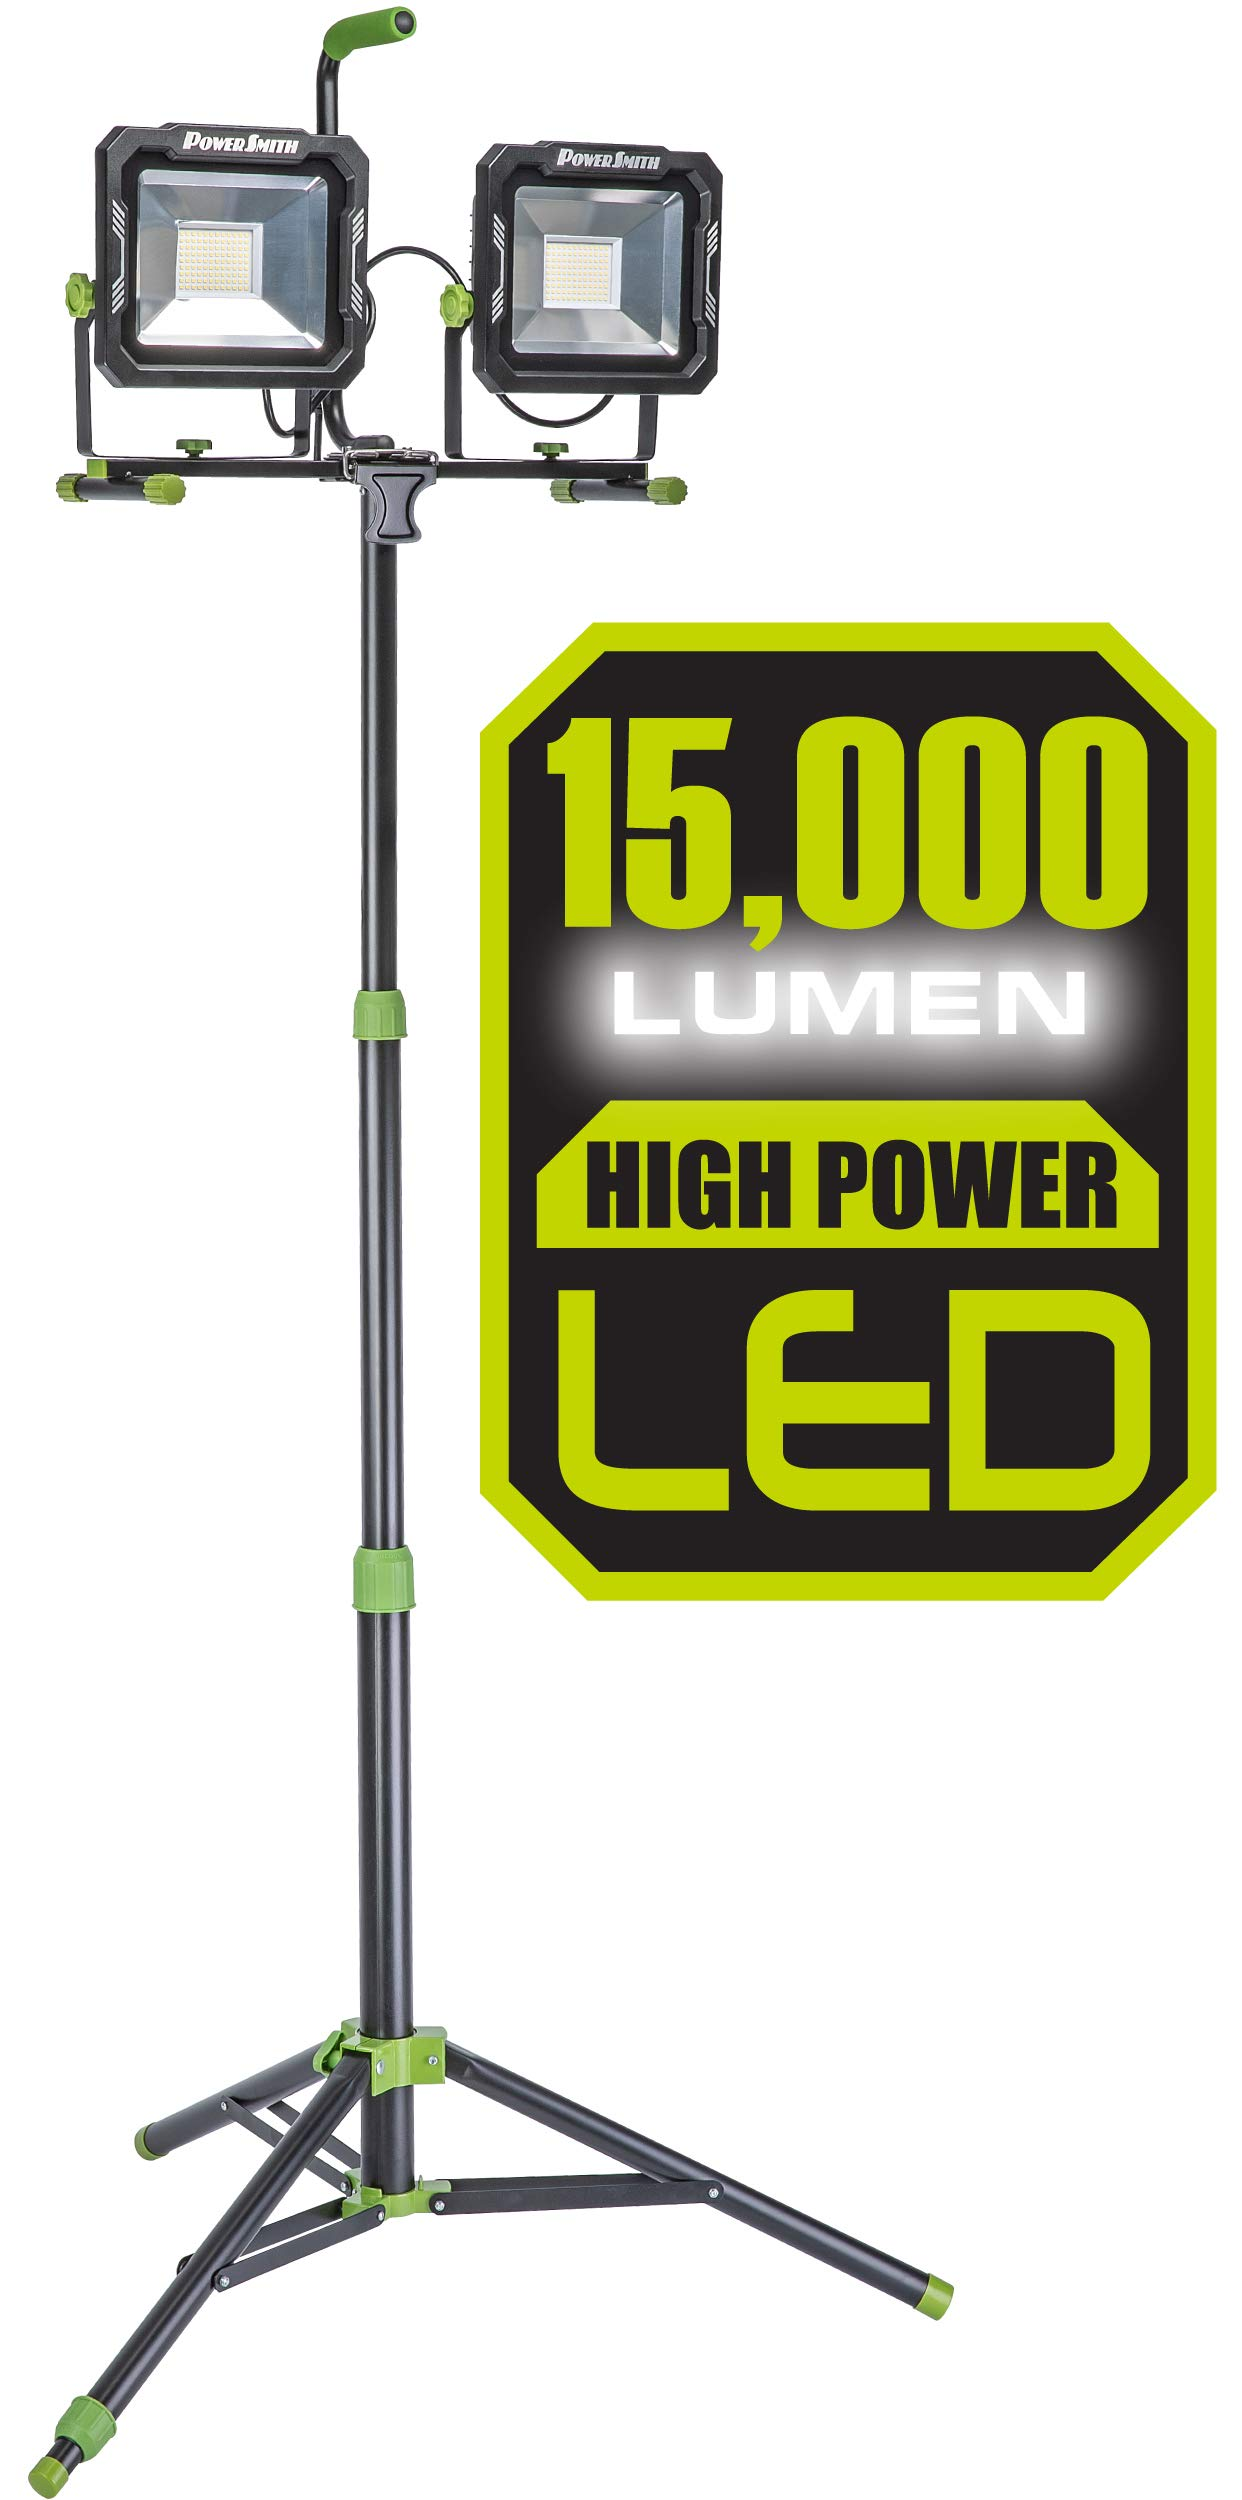 PowerSmith PWL2150TS 15,000 Lumen LED Dual Head work light with Heavy-Duty Adjustable Metal Telescoping Tripod Stand Black and Green